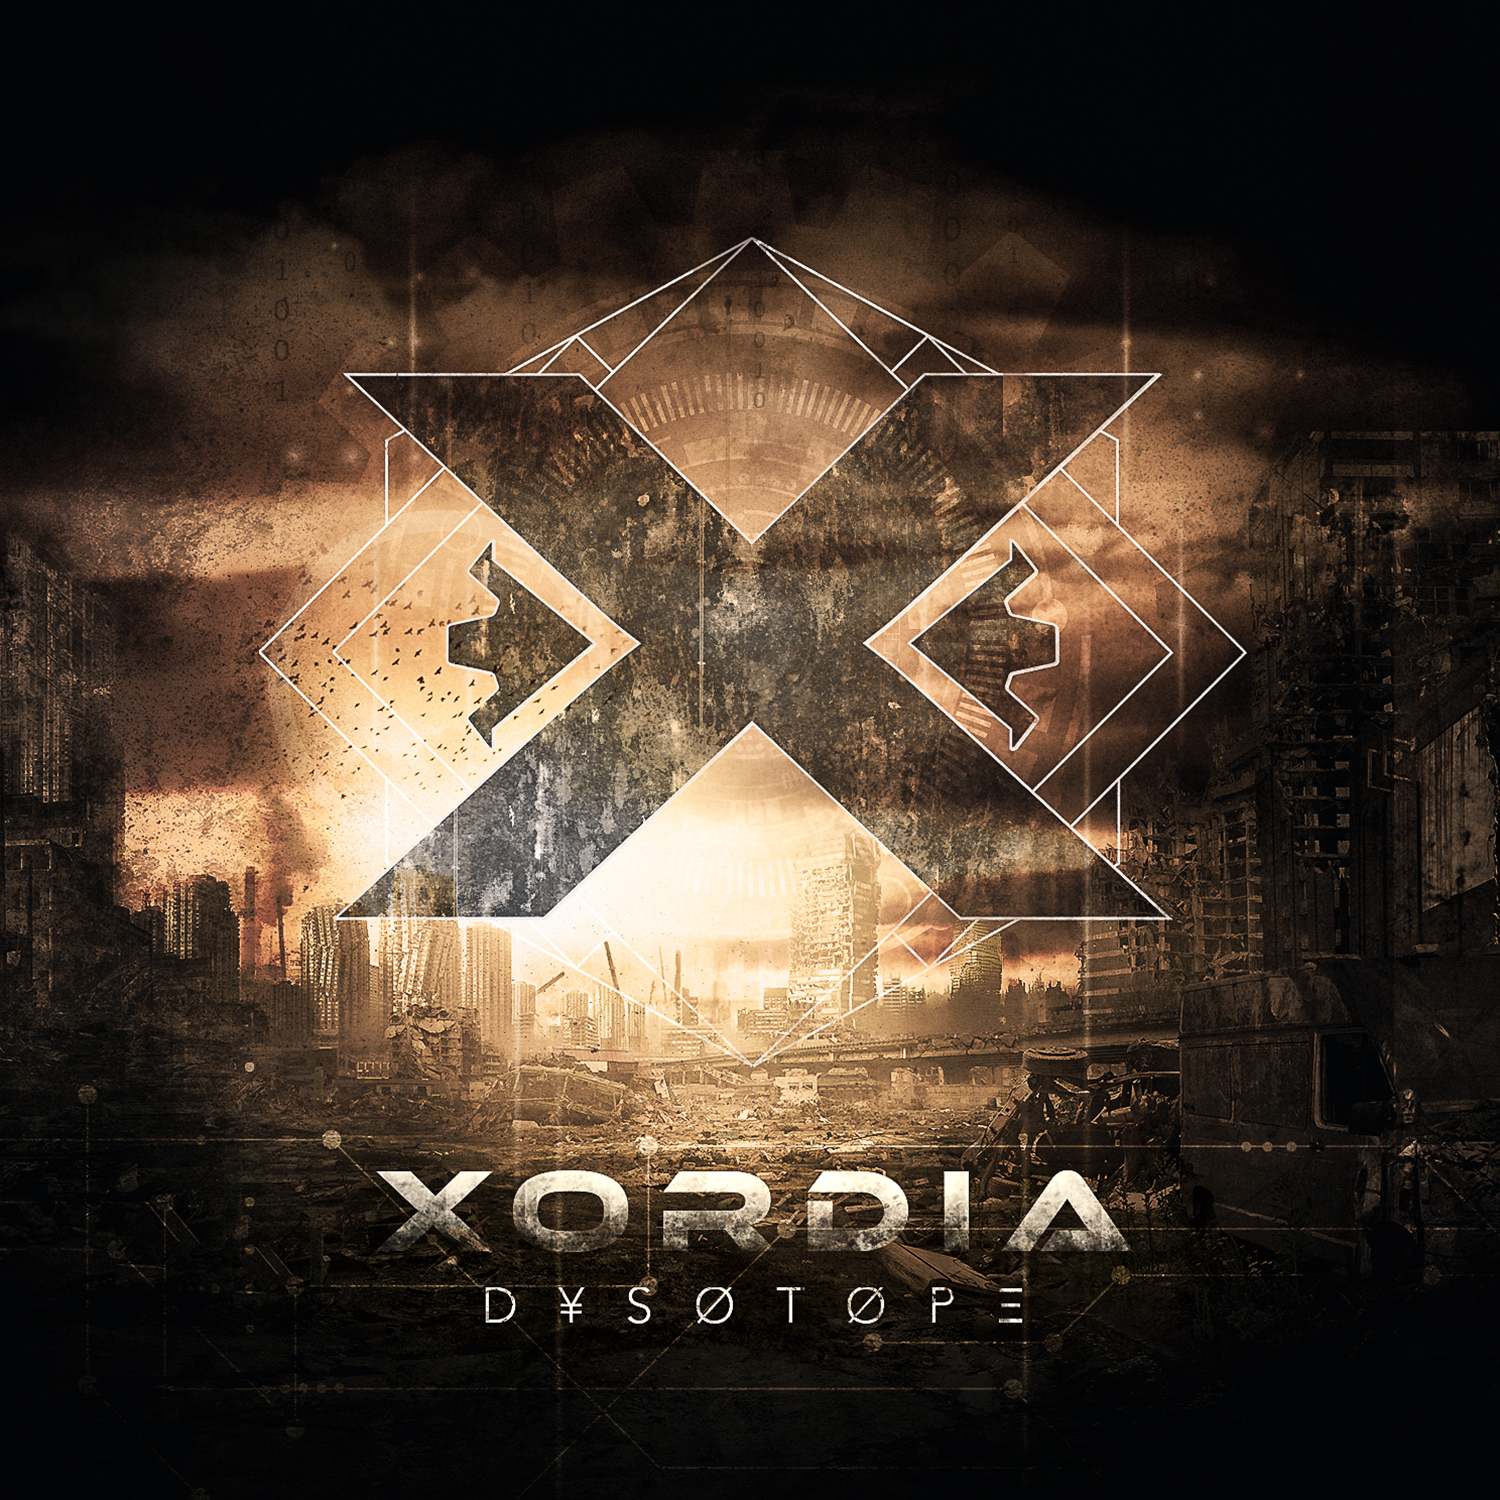 xordia_dysotope_cover_1500x1500px.jpg